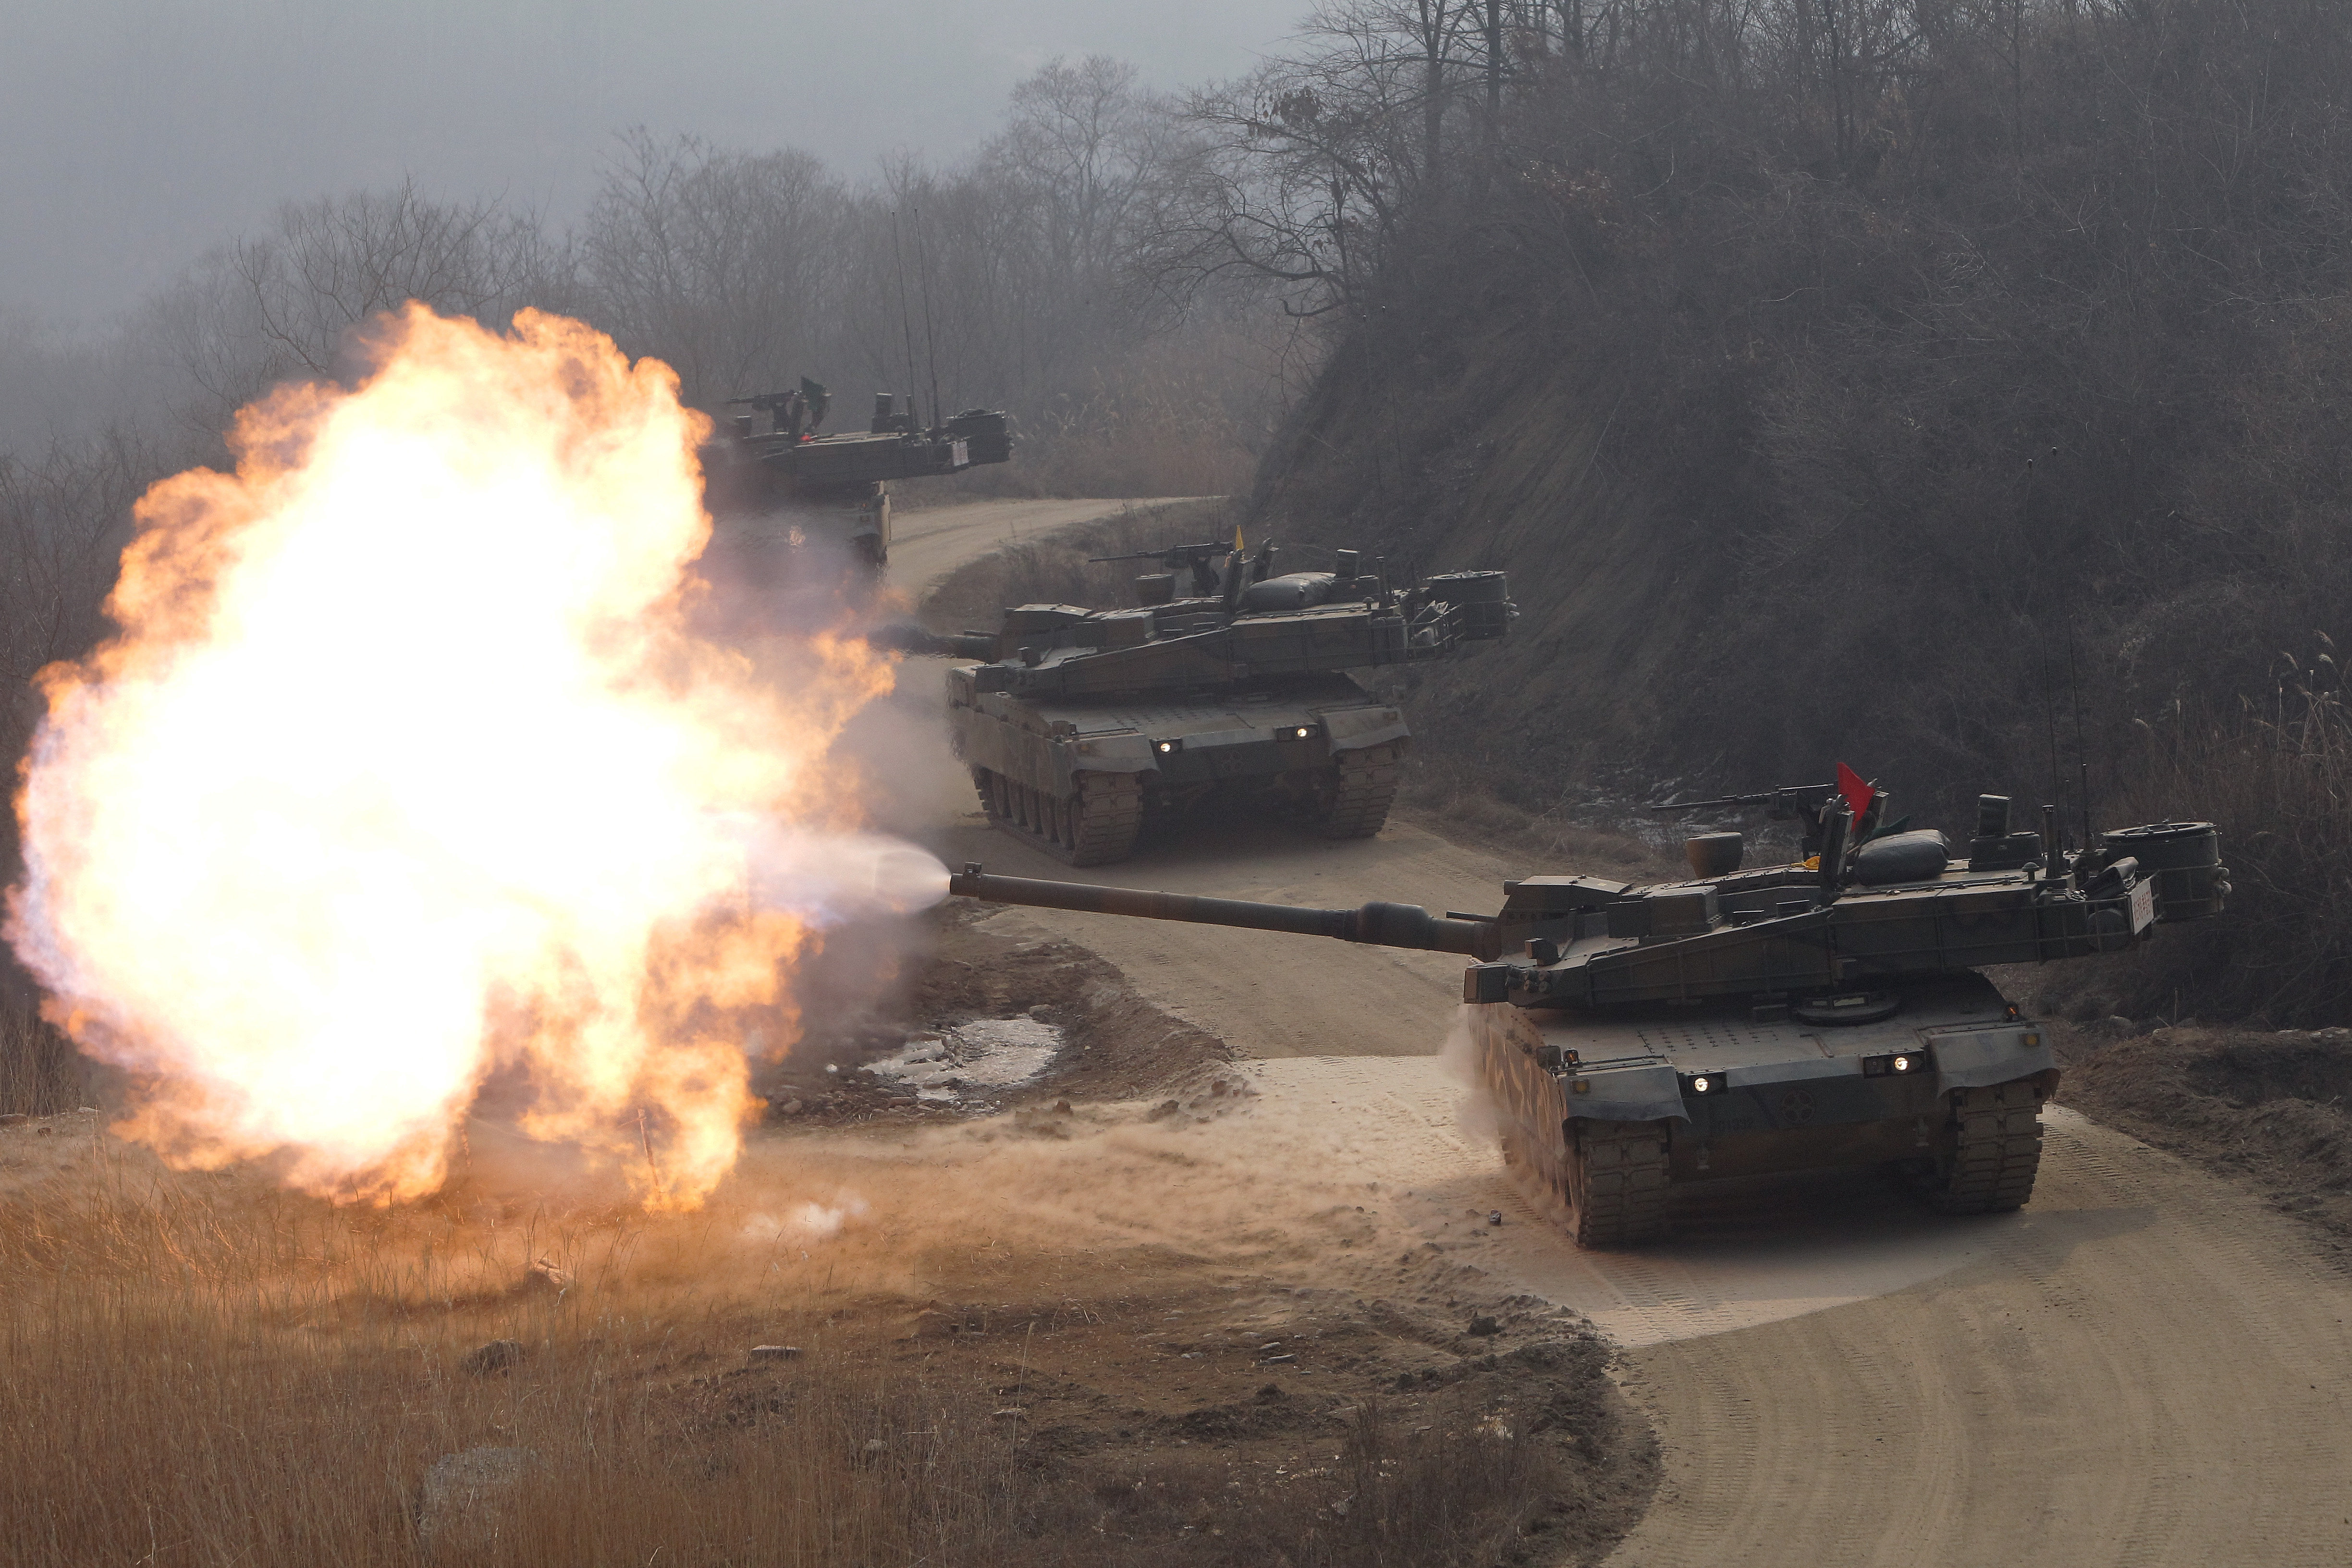 South Korean K2 tanks fire live rounds during a February 11, 2015, drill in Gyeonggi-do, South Korea. (Chung Sung-Jun/Getty Images)